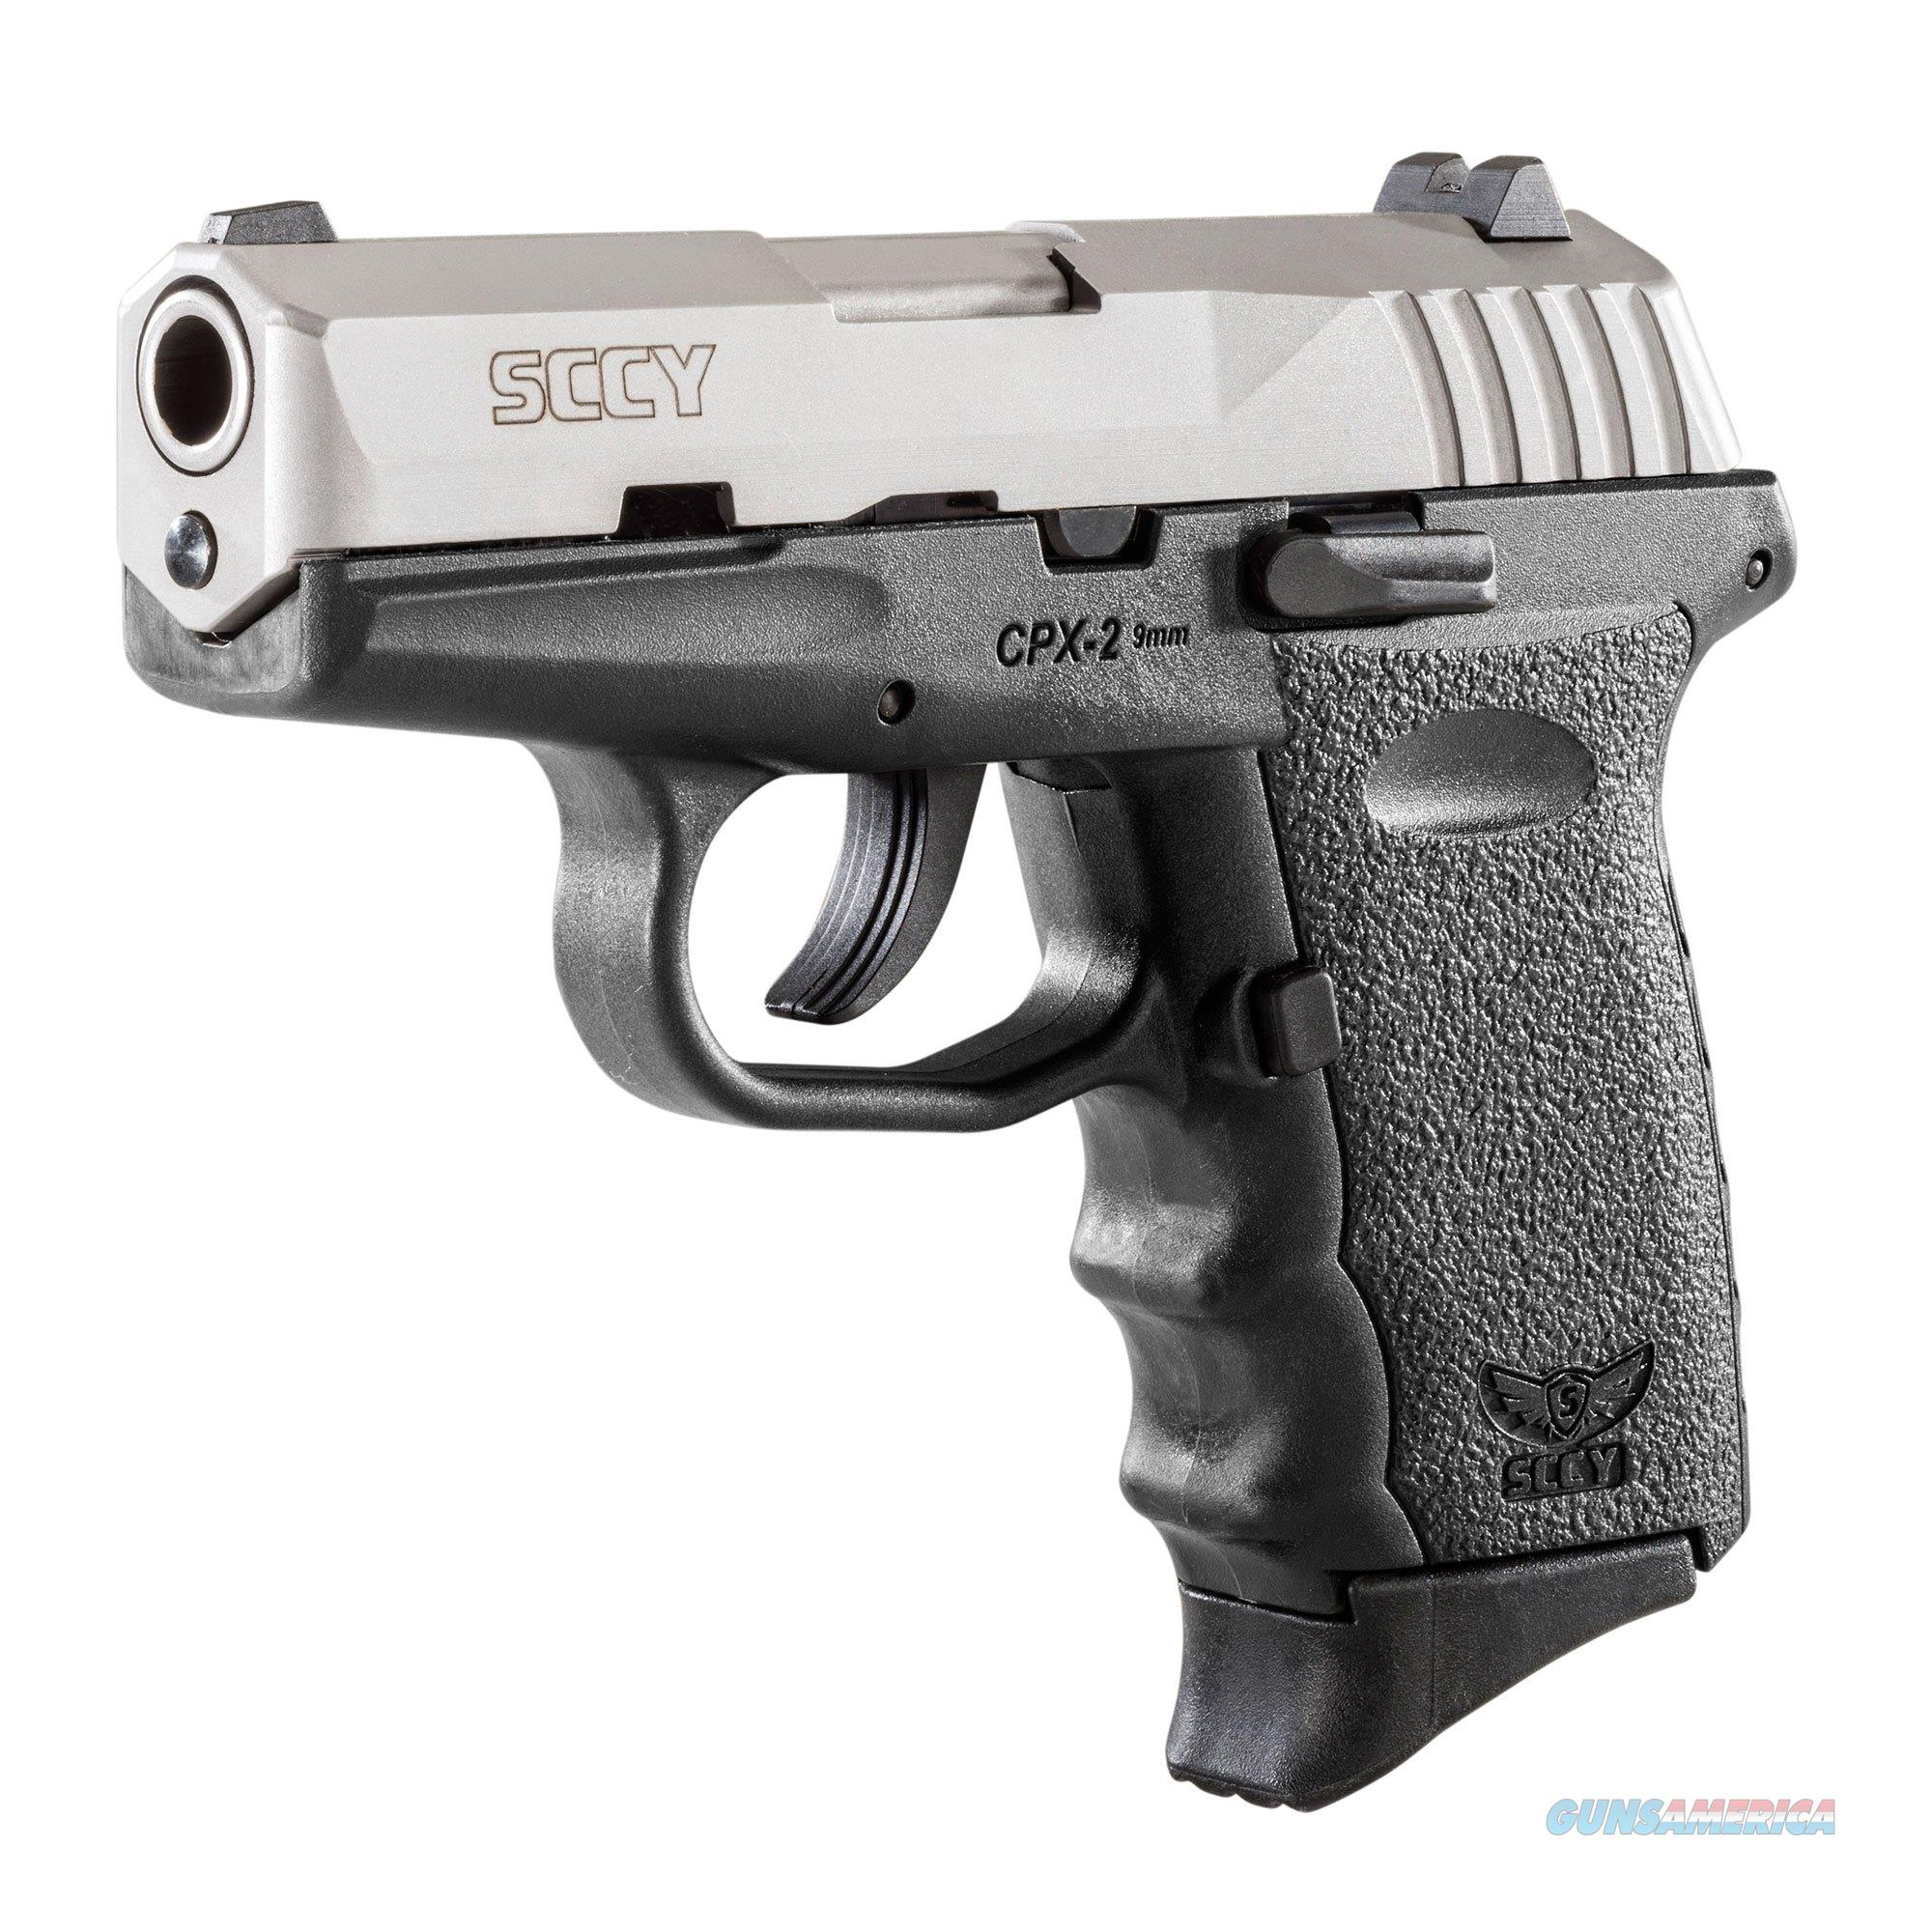 SCCY CPX-2 9MM Pistol w/Stainless Slide  Guns > Pistols > SCCY Pistols > CPX2